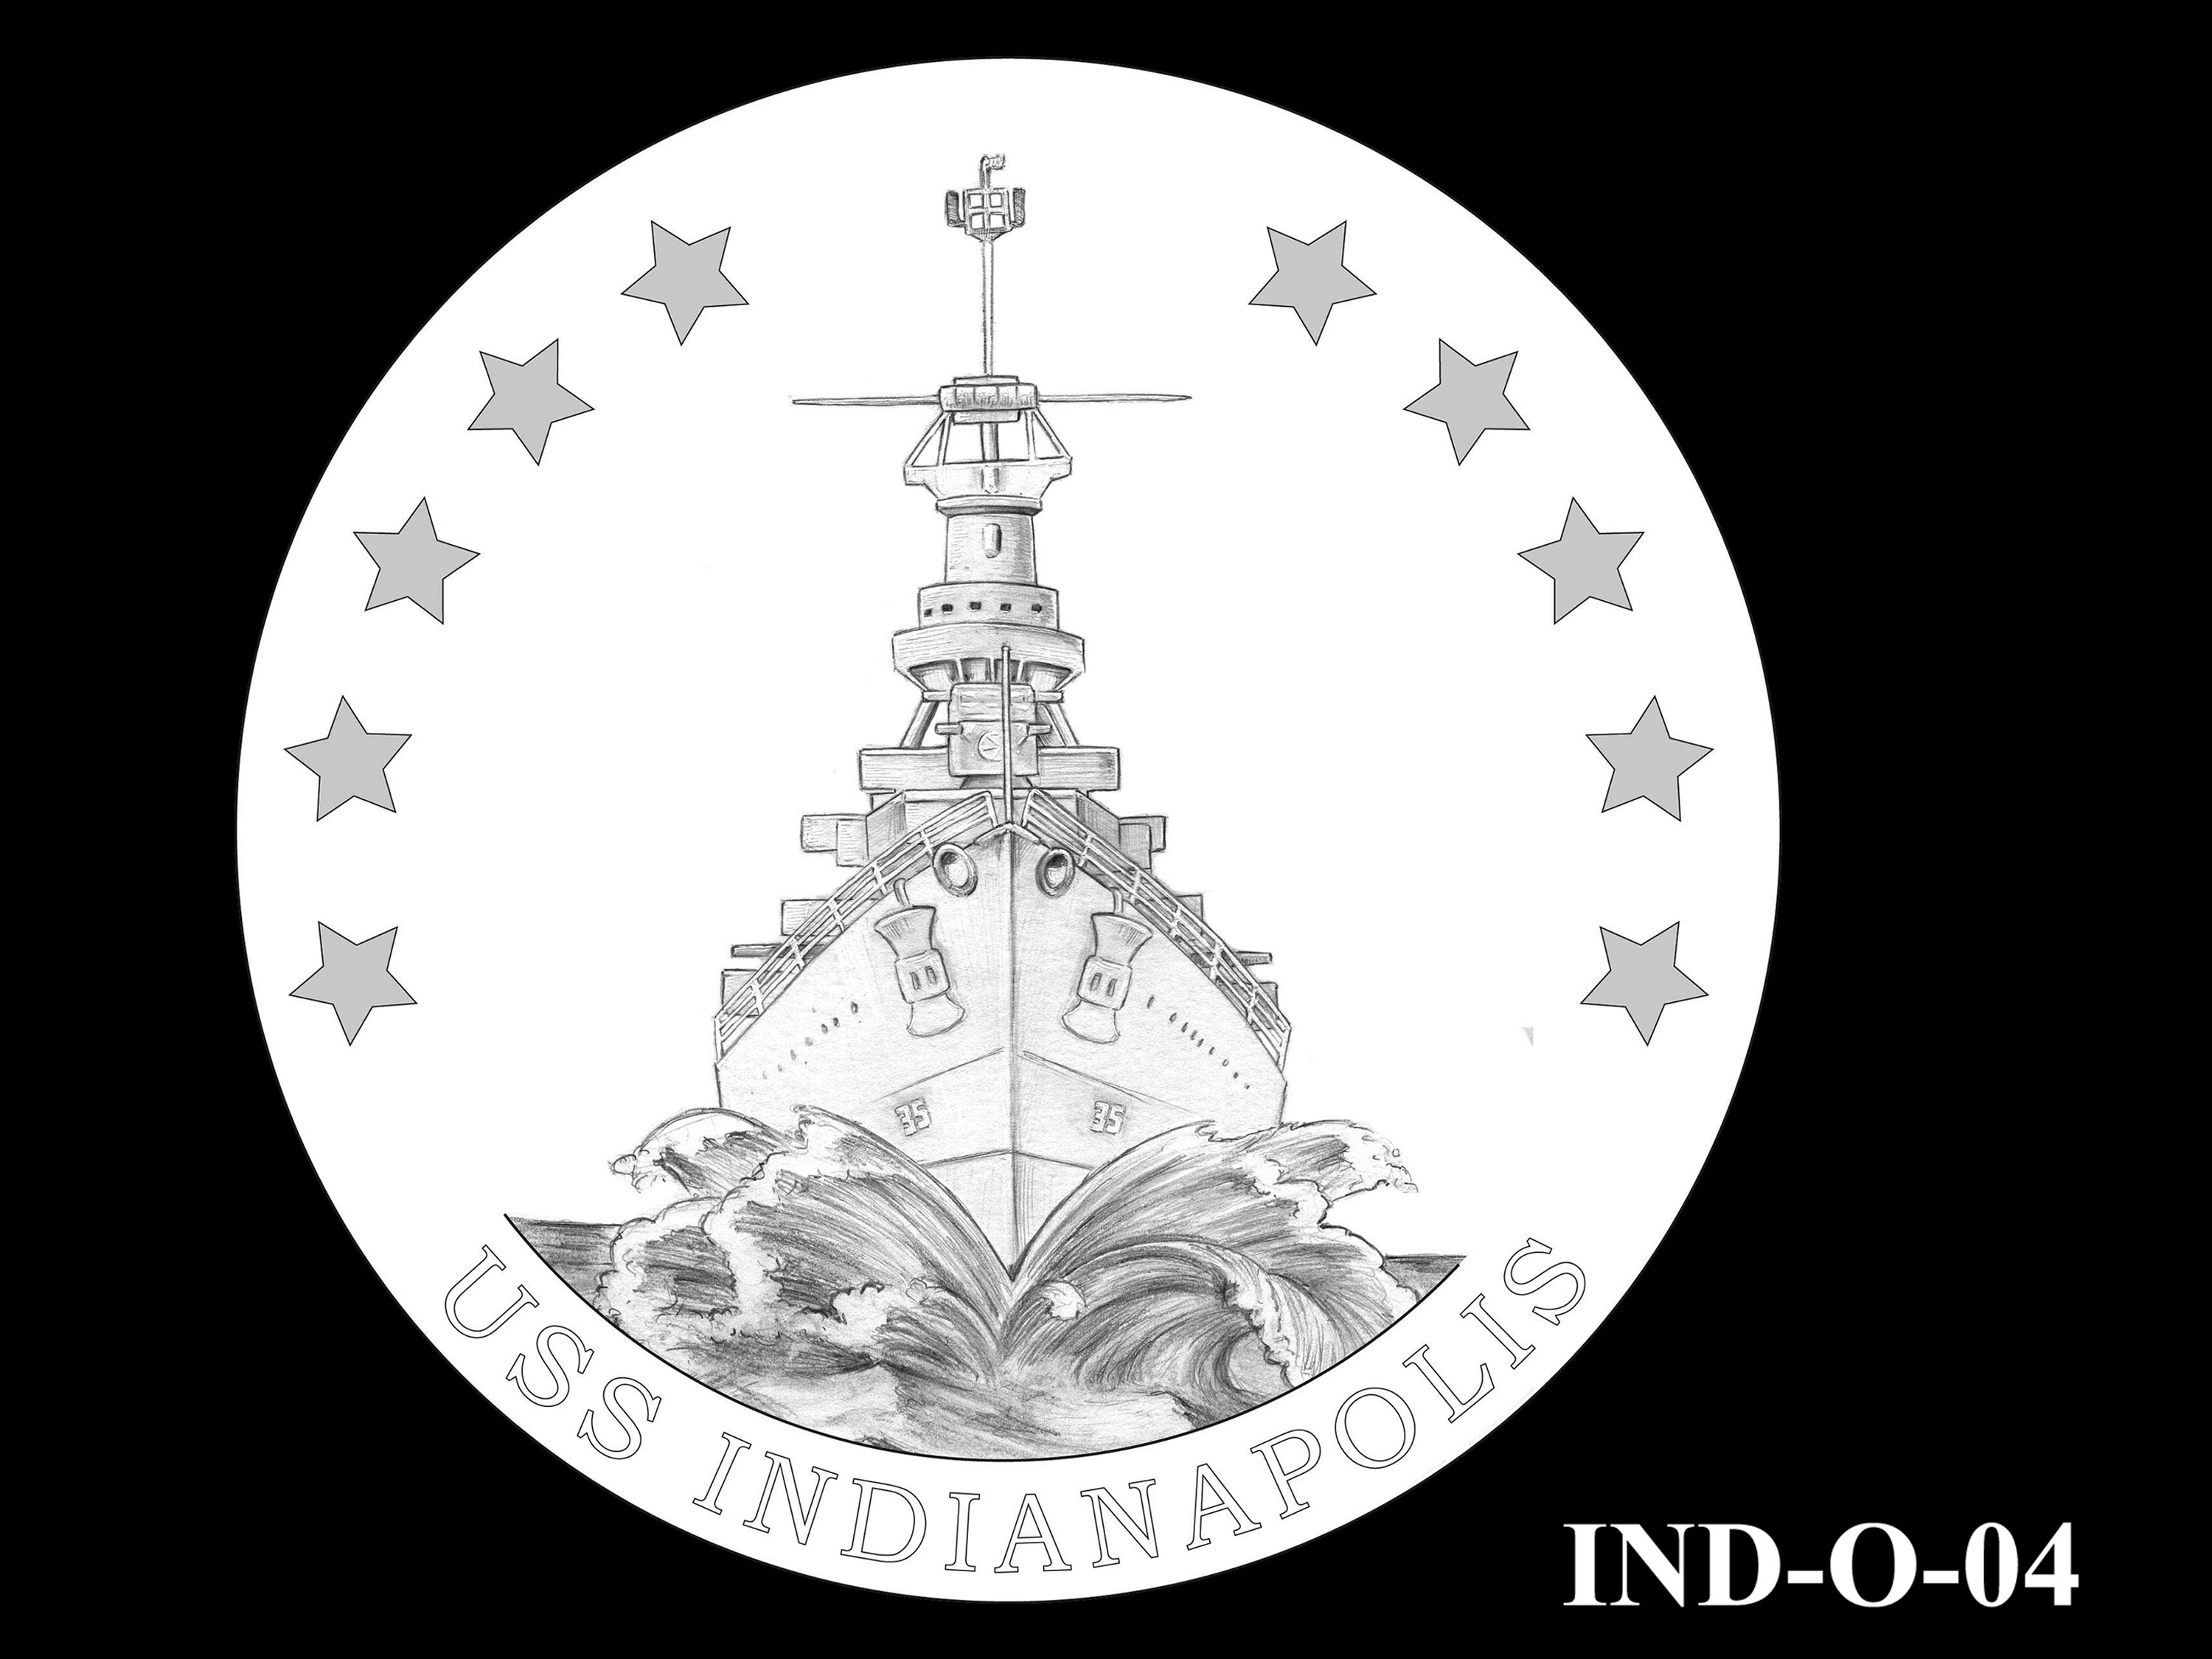 IND-O-04 - USS Indianapolis Congressional Gold Medal - Obverse